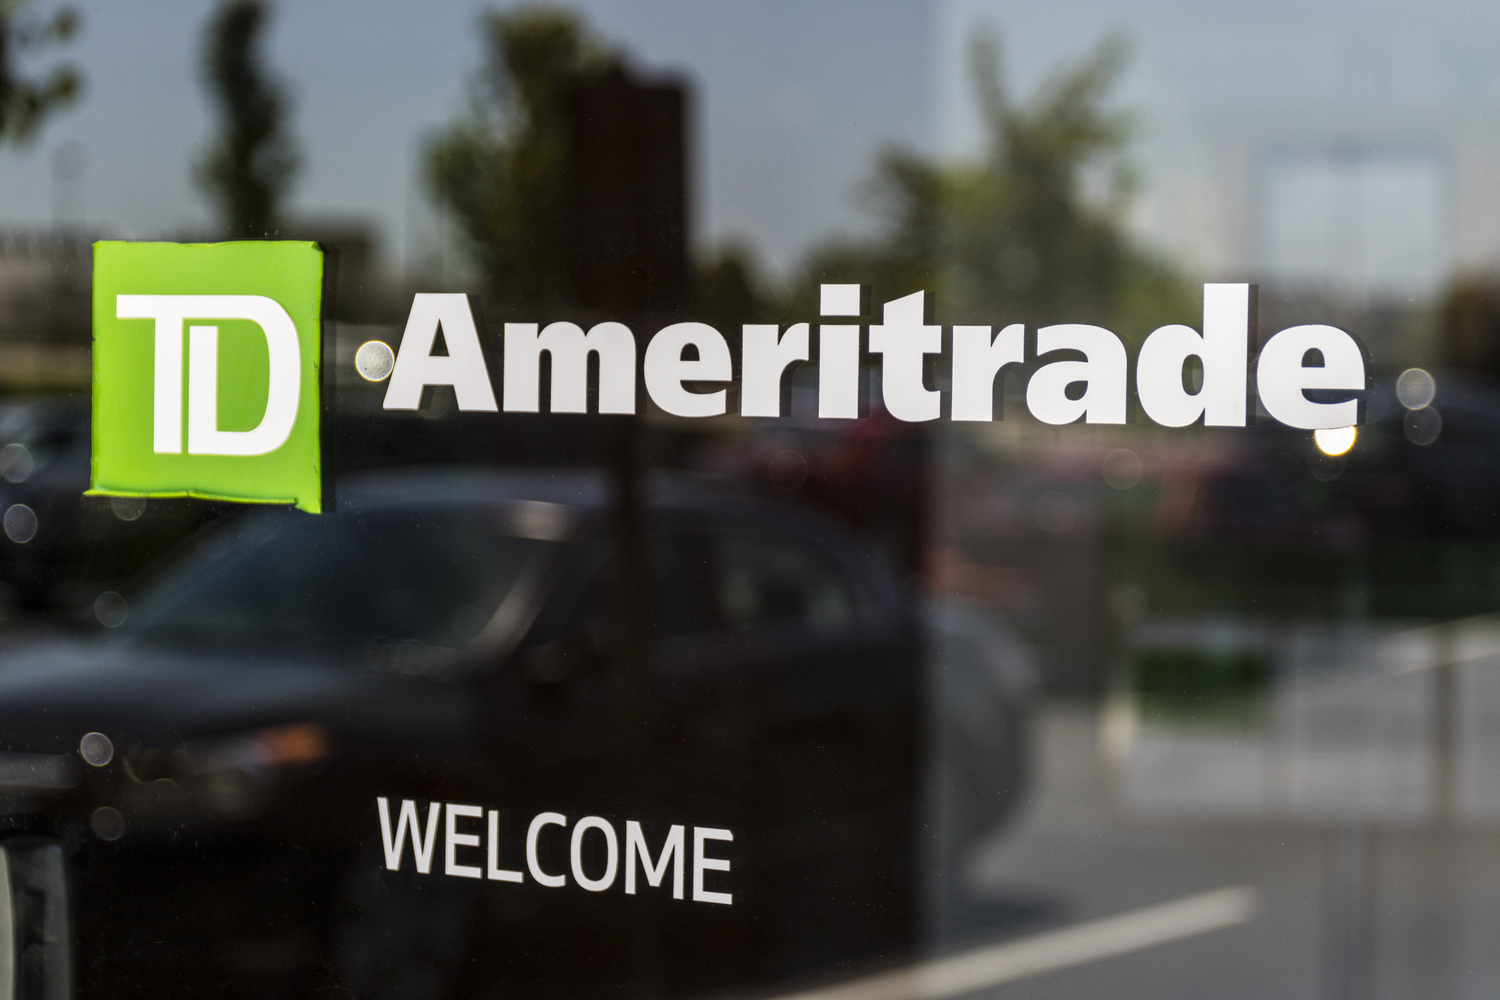 cryptocurrency to buy on td ameritrade